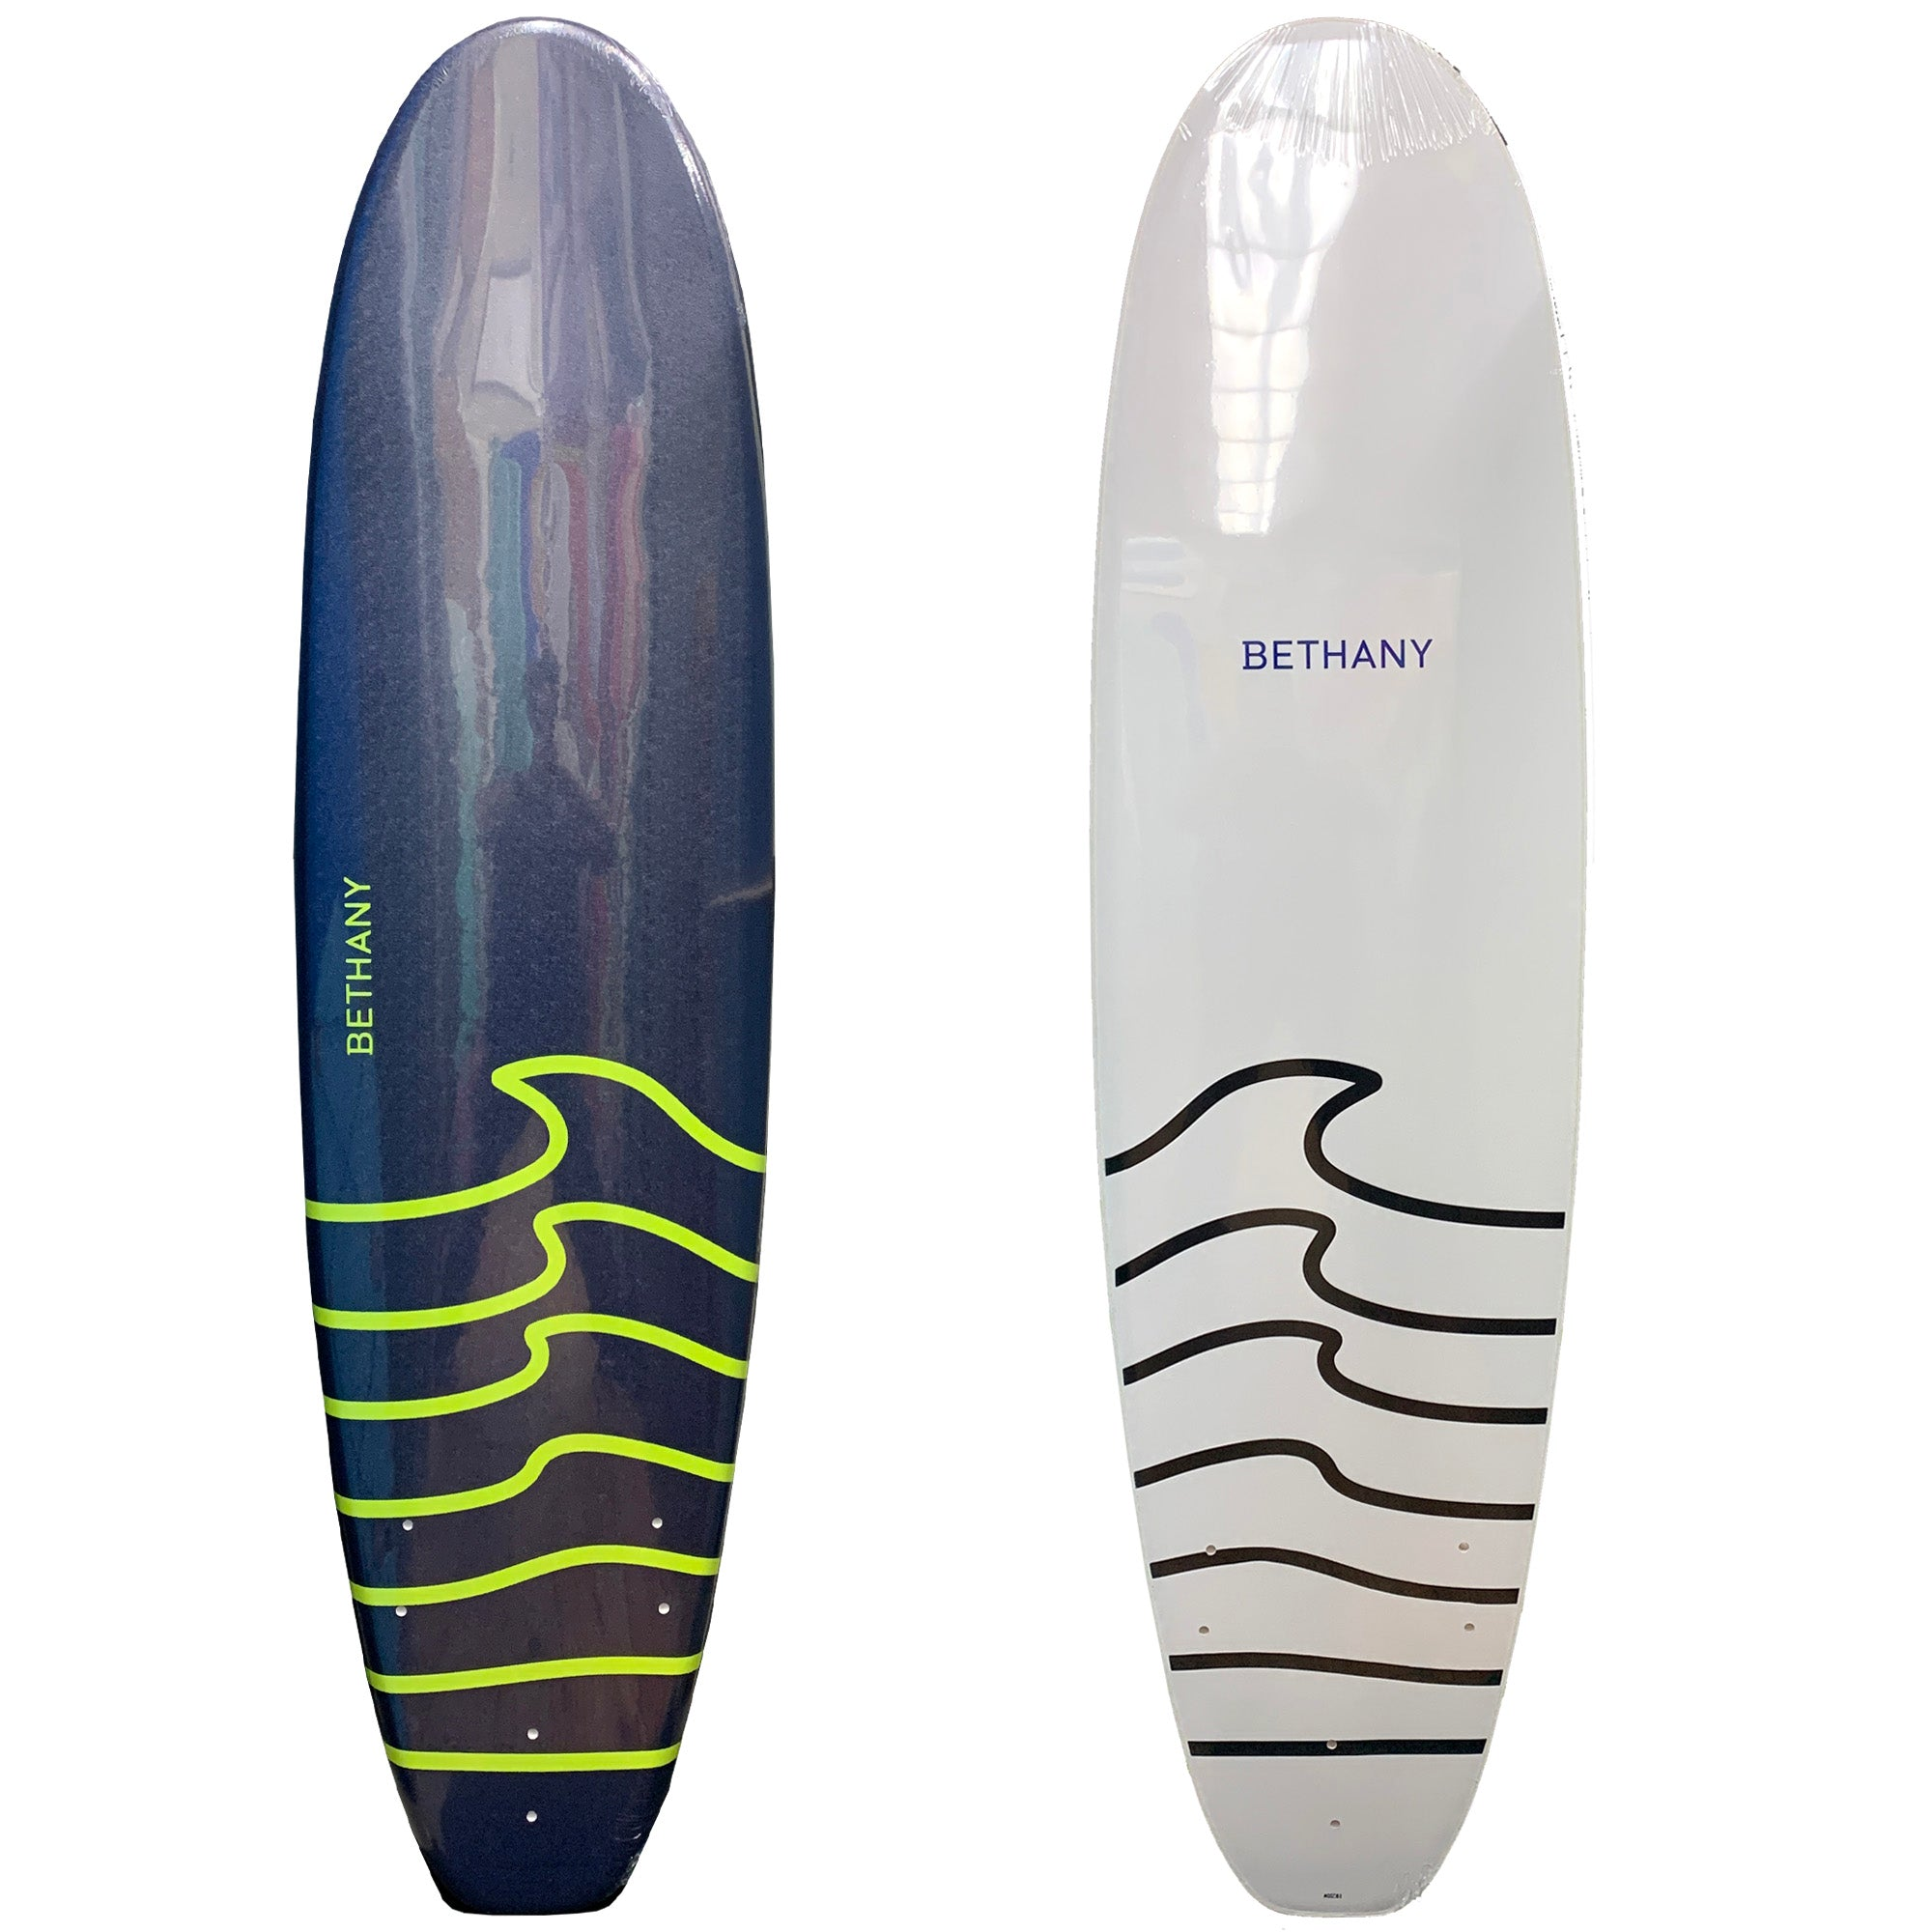 Channel Islands Bethany Hamilton 7'0 Soft Surfboard